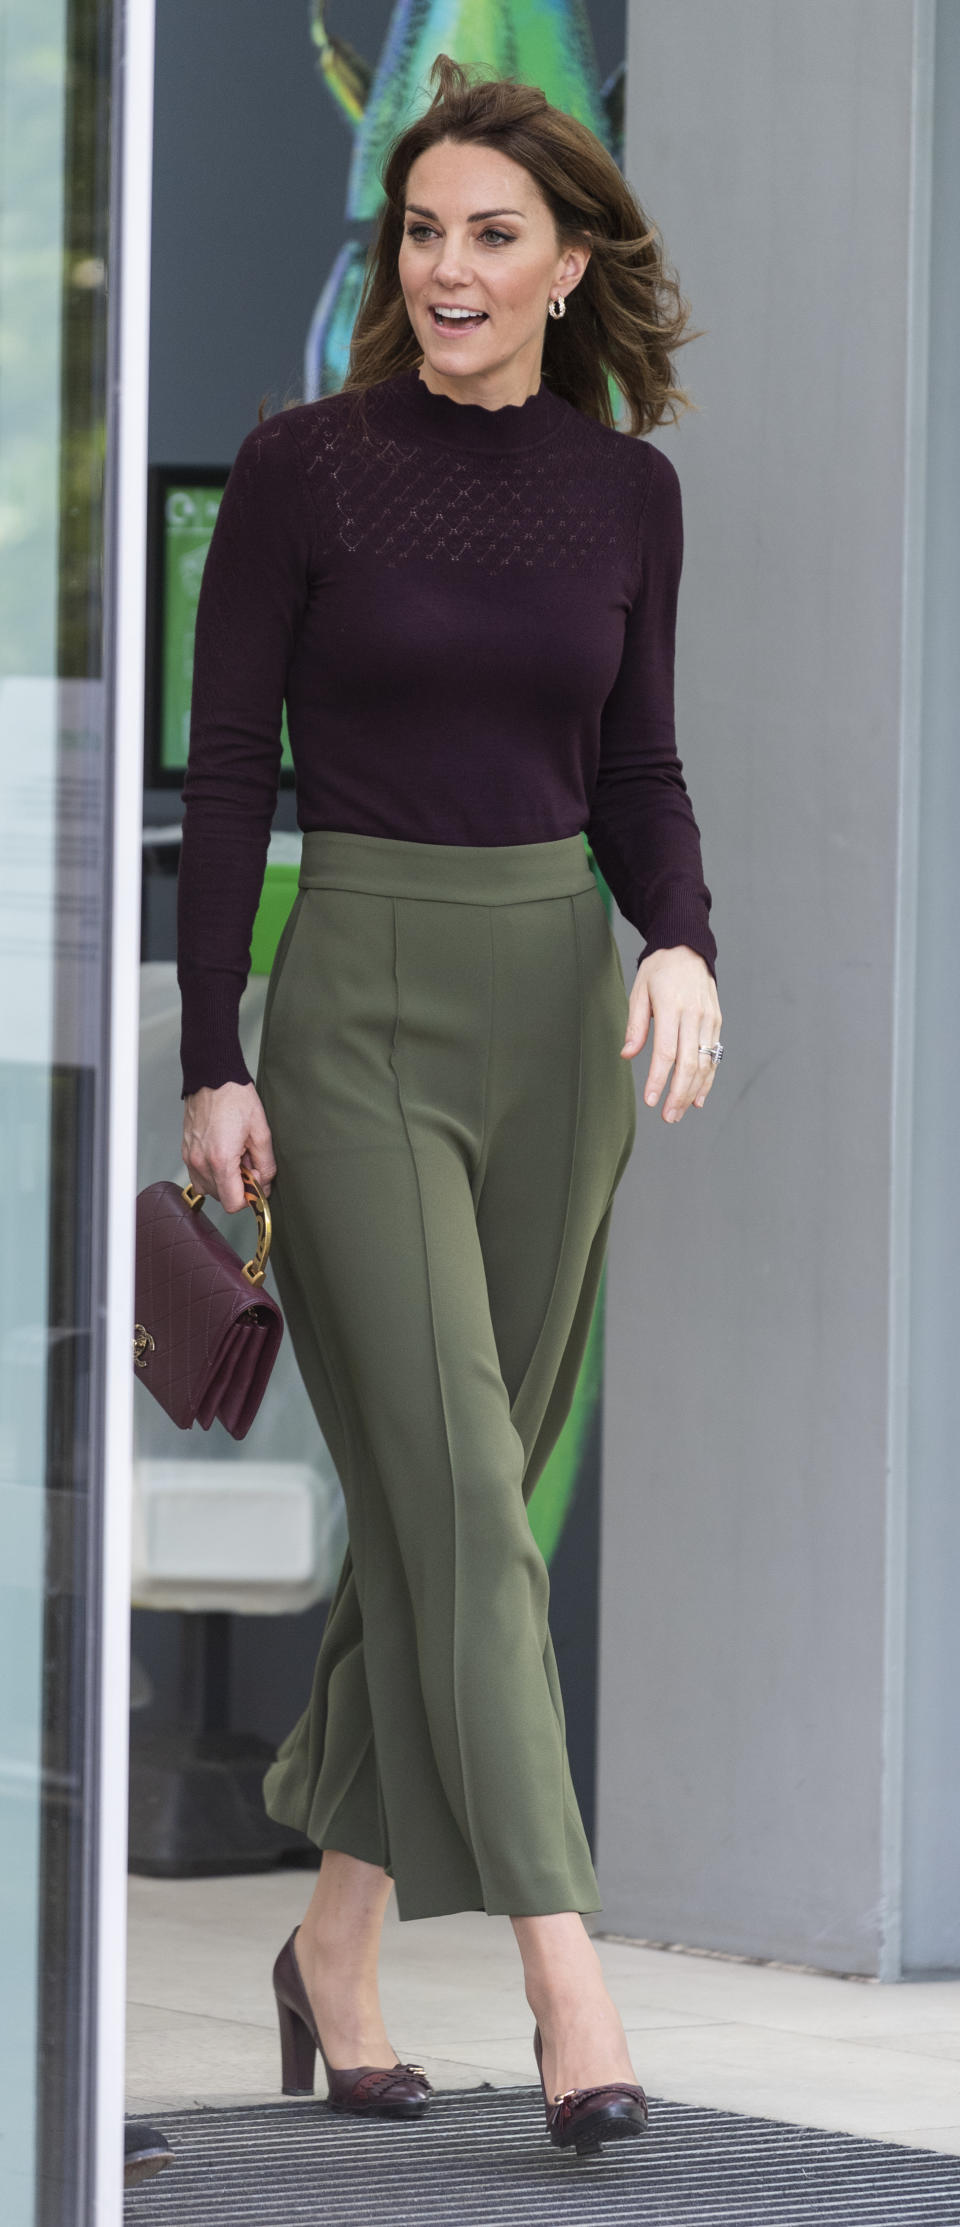 The duchess contrasted her summery locks with a chic outfit in an autumnal palette. (Photo: Mark Cuthbert/UK Press via Getty Images)